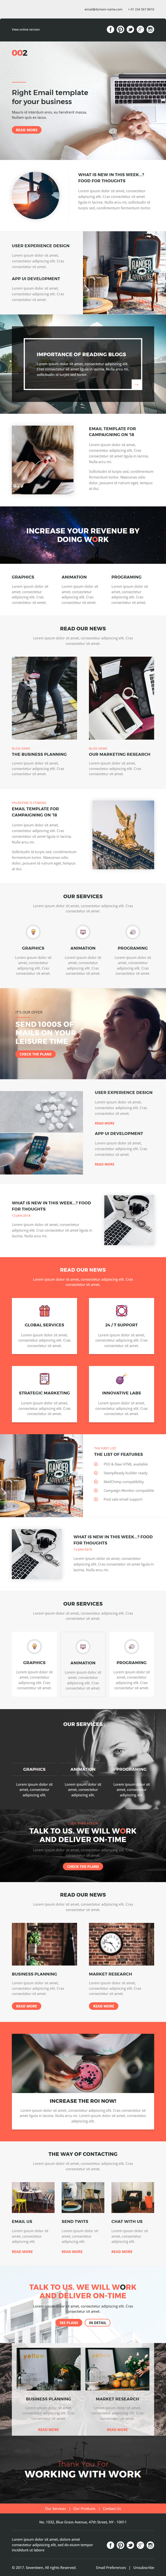 Incorp business email newsletter templates set by targettemplates incorp business email newsletter templates set email templates marketing 01previewg 01screenshotg 02screenshotg 03screenshotg flashek Images